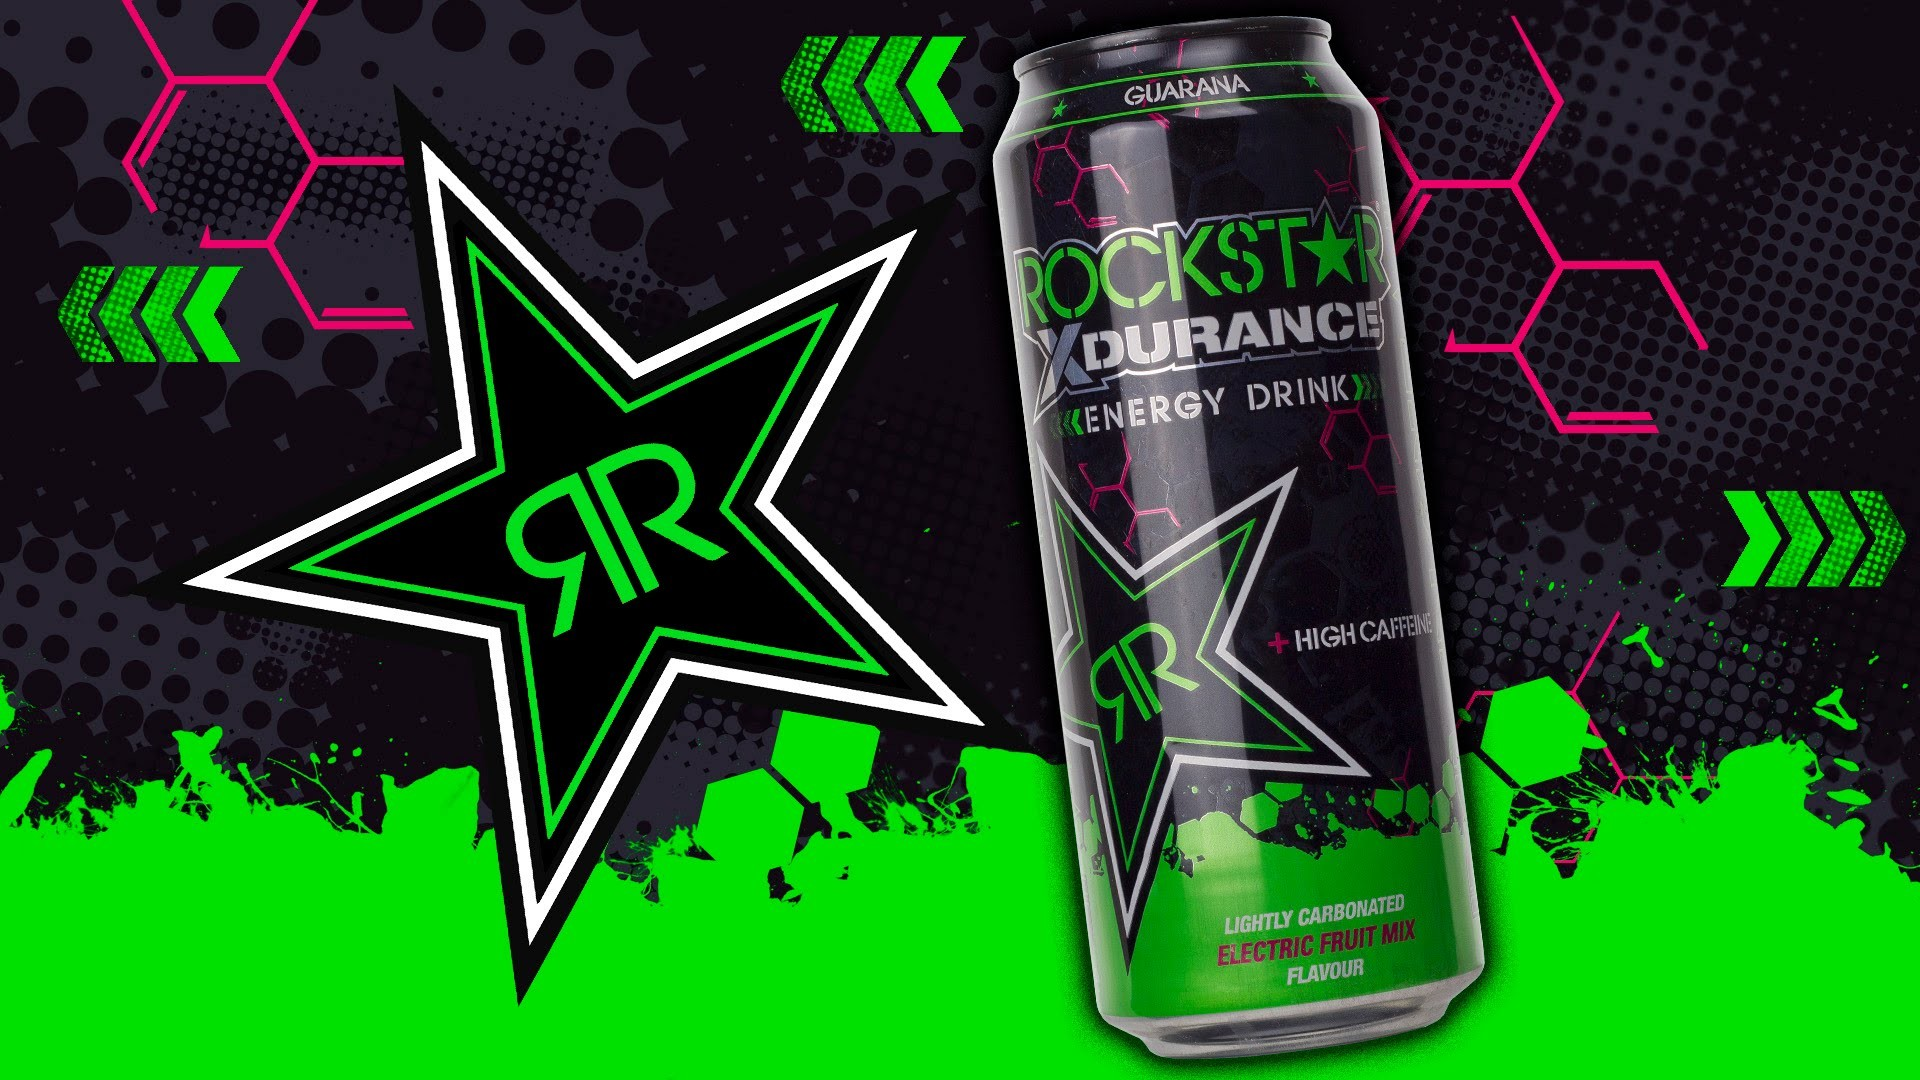 Res: 1920x1080, Wir Probieren #199 Rockstar XDurance Electric Fruit Mix